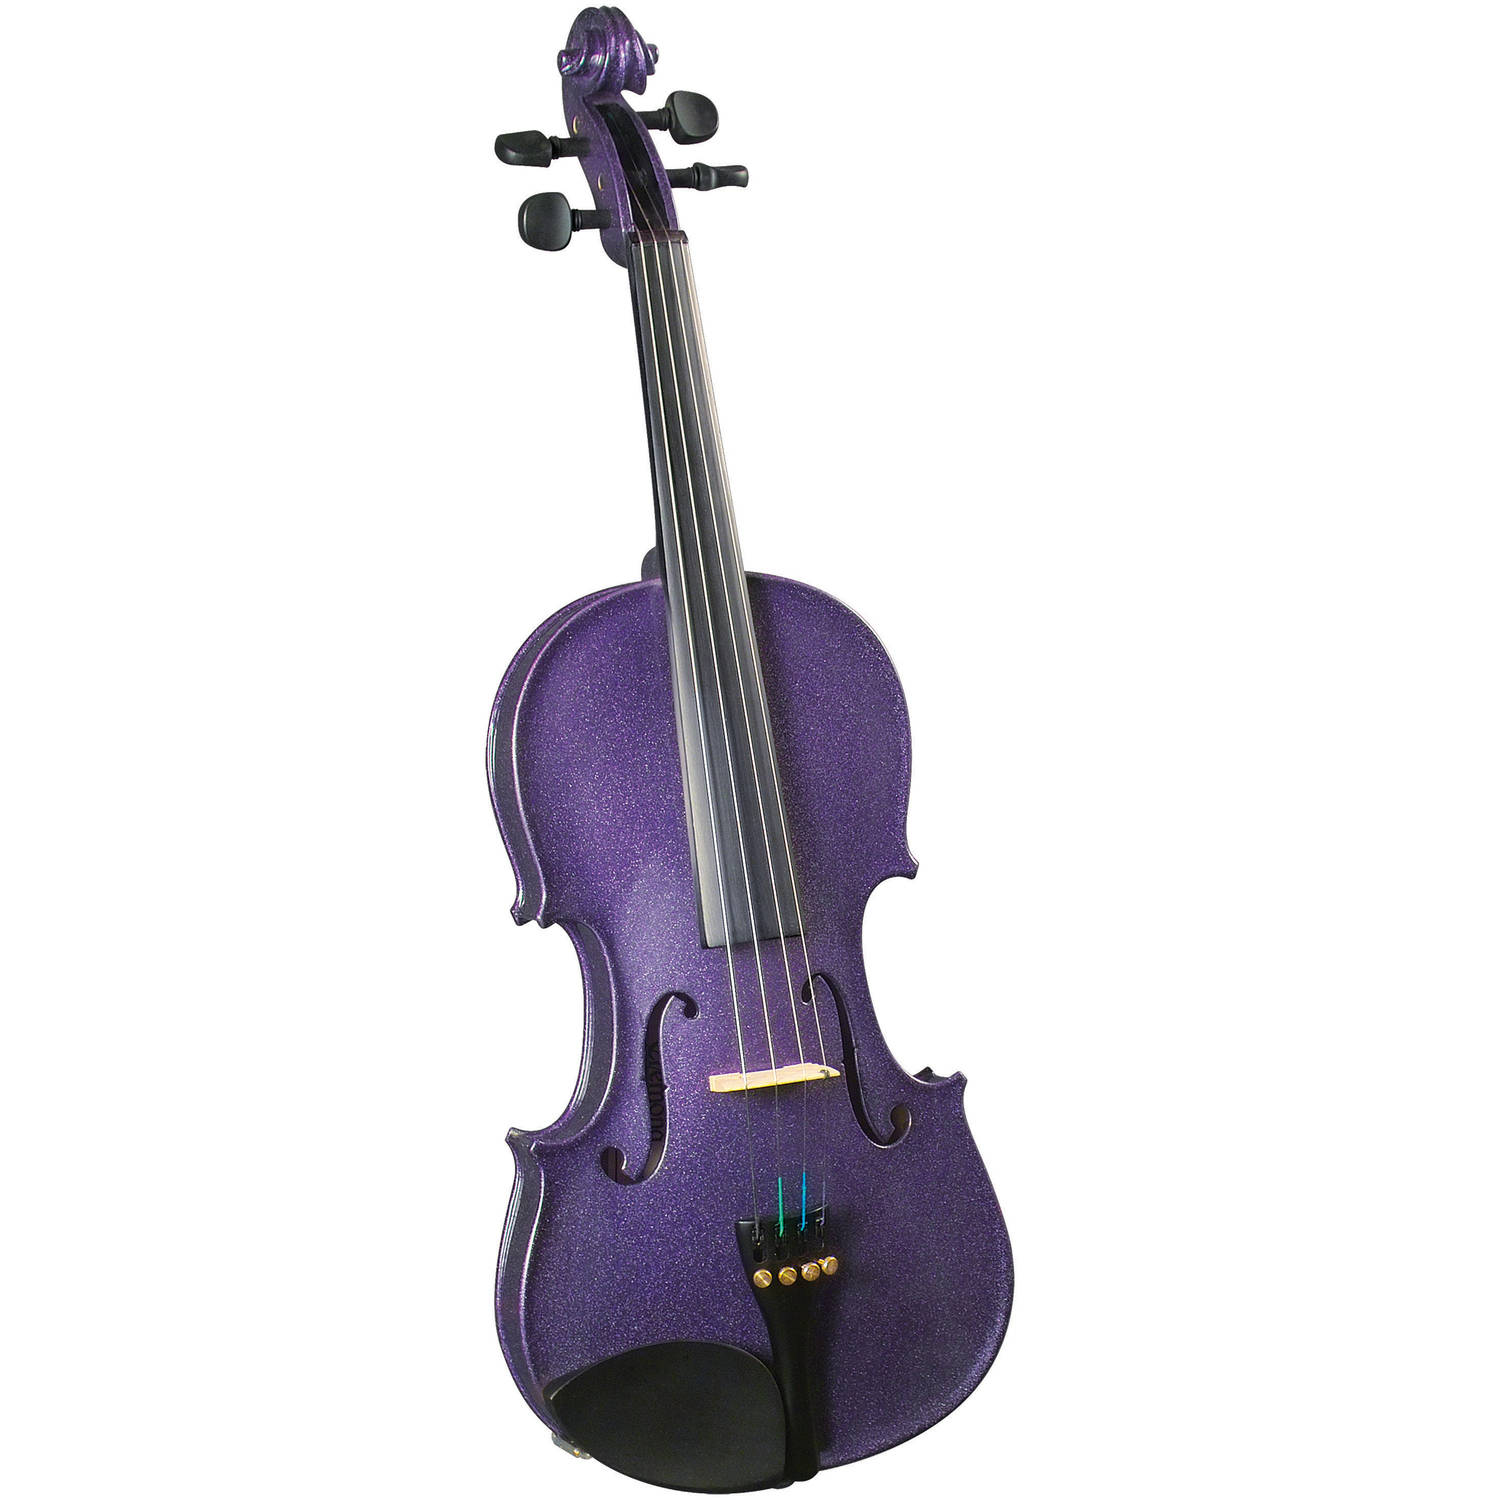 Cremona SV-130 Premier Novice Violin Outfit Sparkling Purple 4 4 Size by Generic